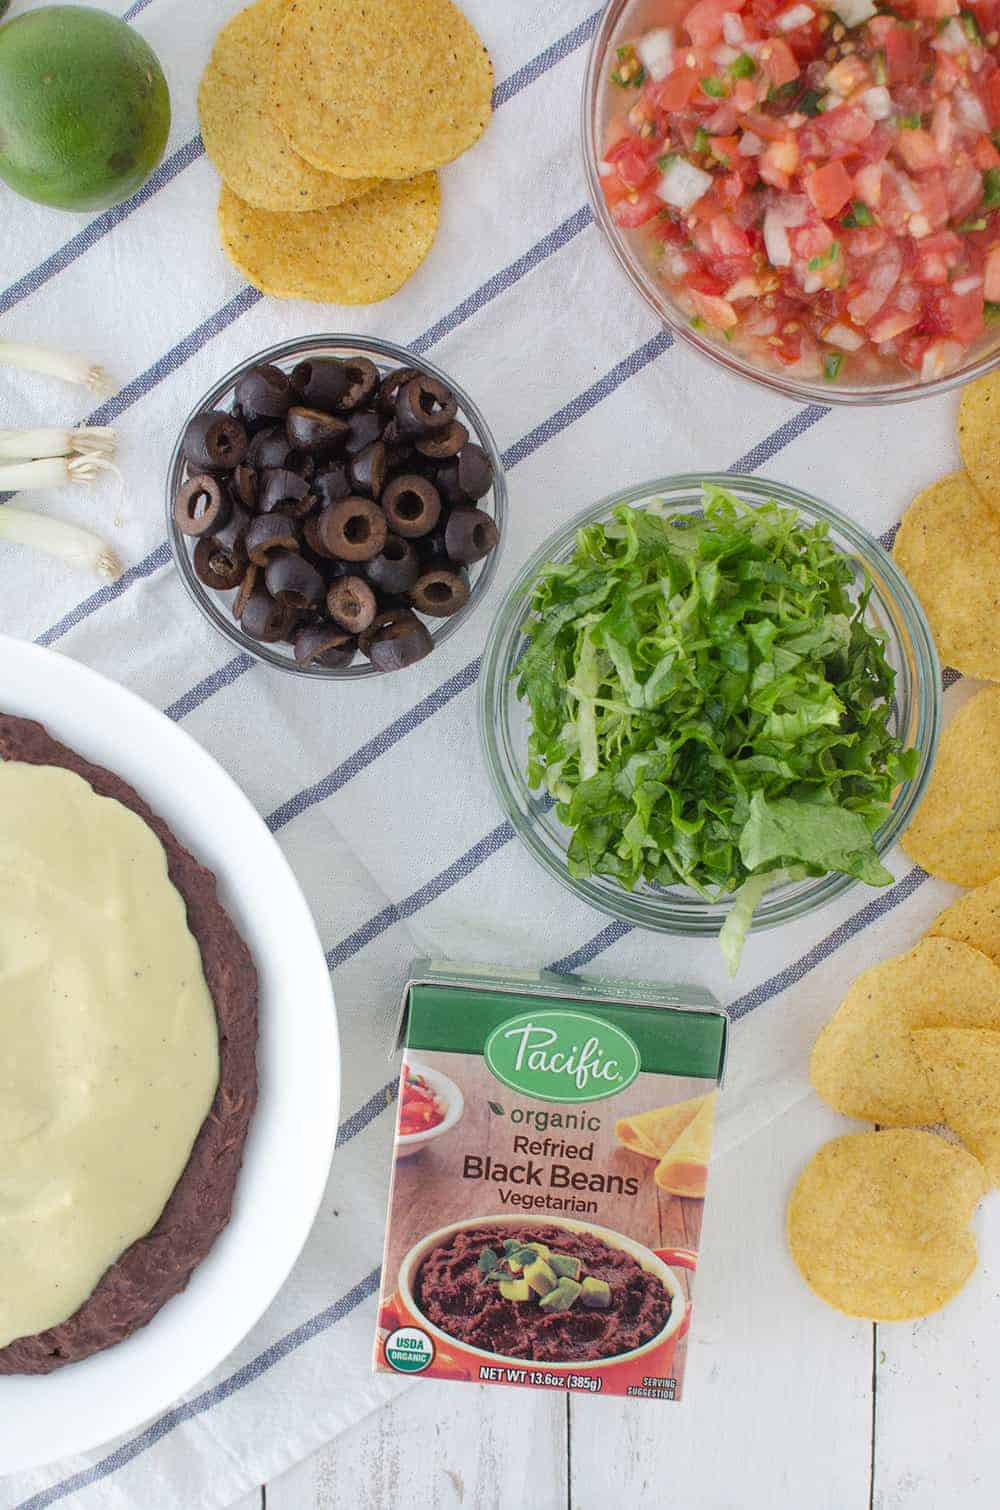 Vegan Mexican 7 Layer Dip! Refried black beans,quick vegan cheese sauce, guacamole, homemade pico de gallo, shredded lettuce, olives, and peppers! A must make for a healthy superbowl!   www.delishknowledge.com